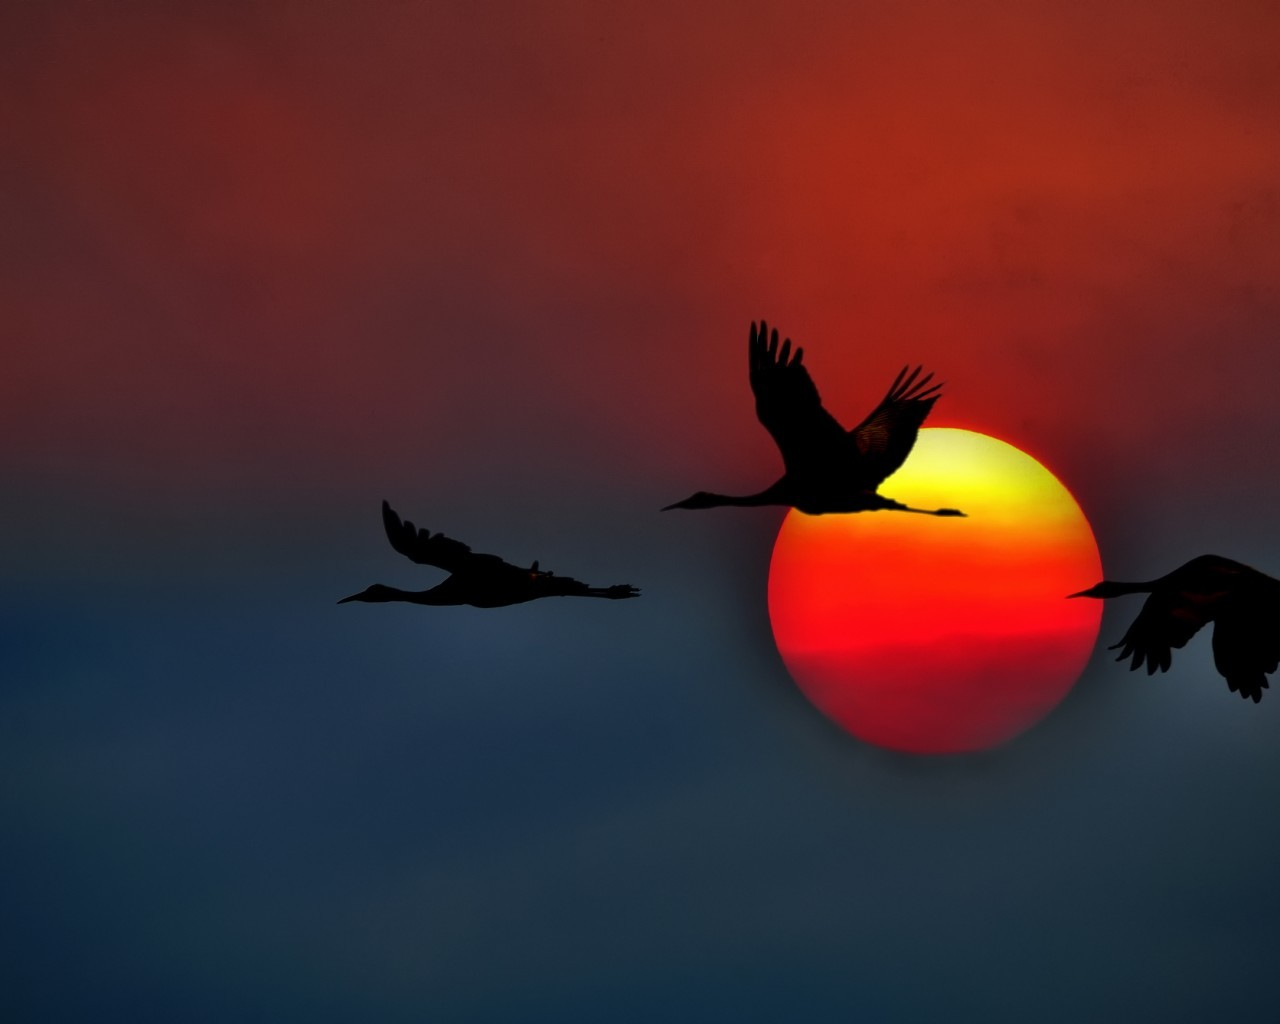 21604 download wallpaper Animals, Birds, Sunset, Pictures, Cranes screensavers and pictures for free